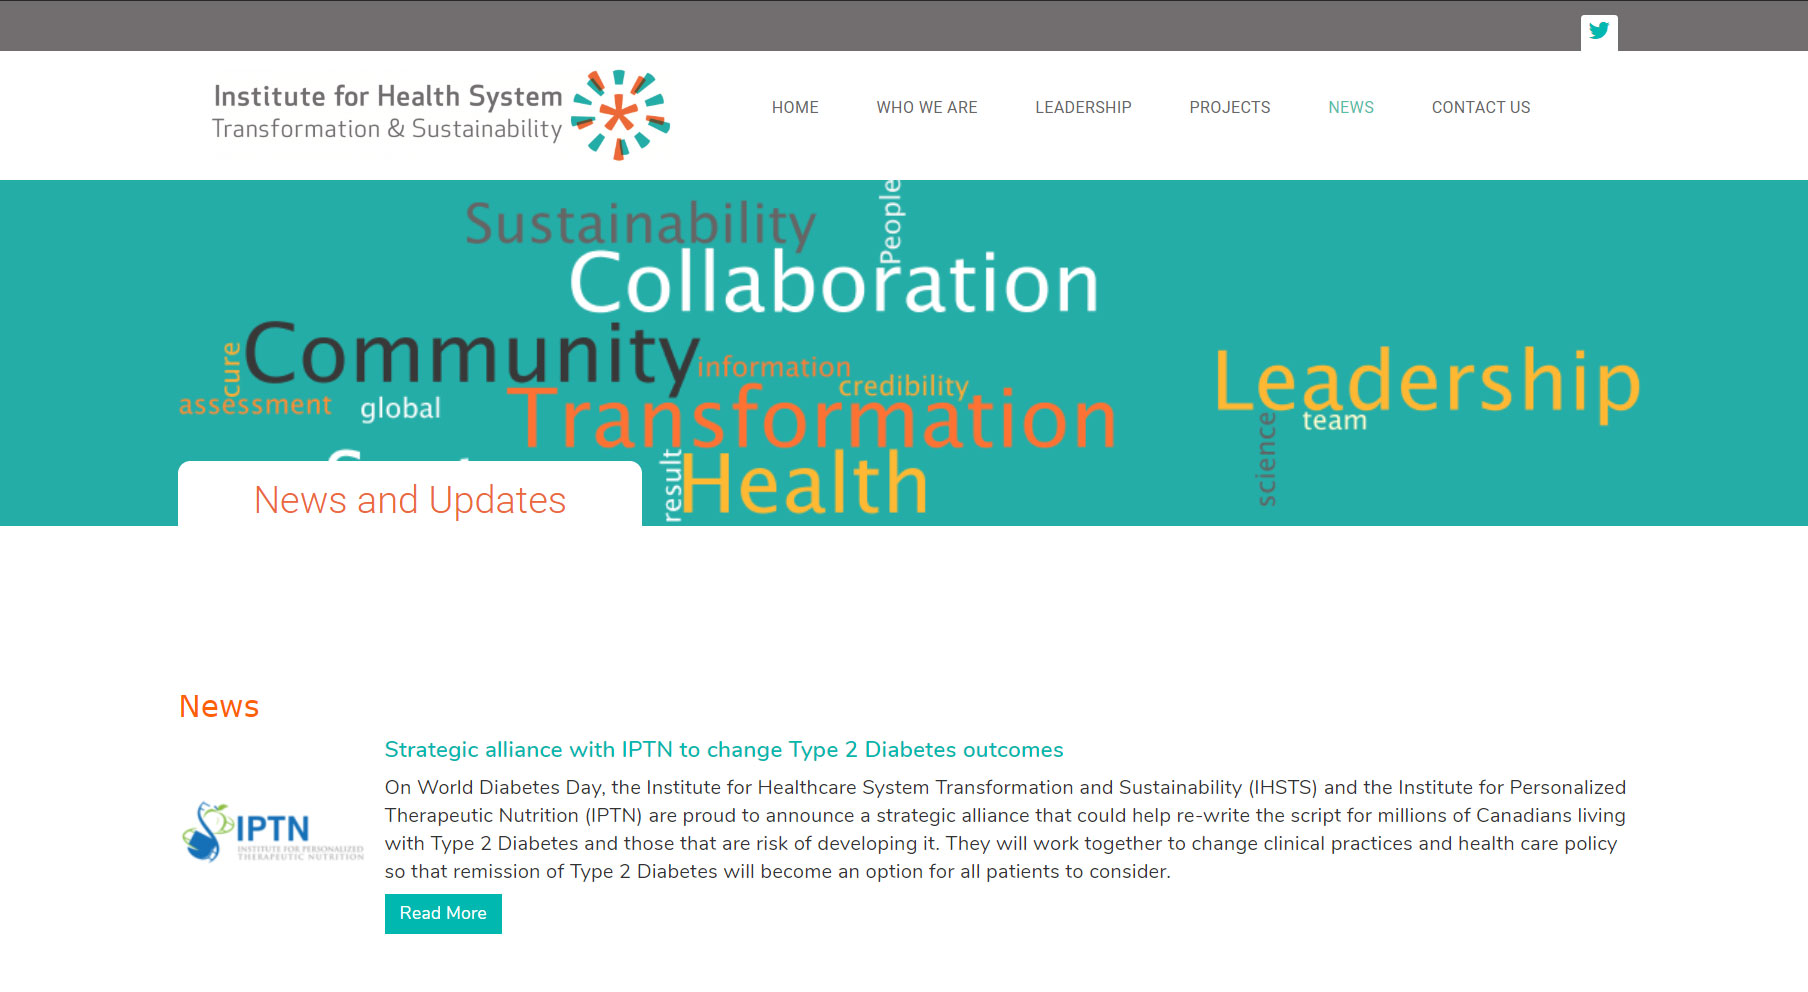 IHSTS News Page